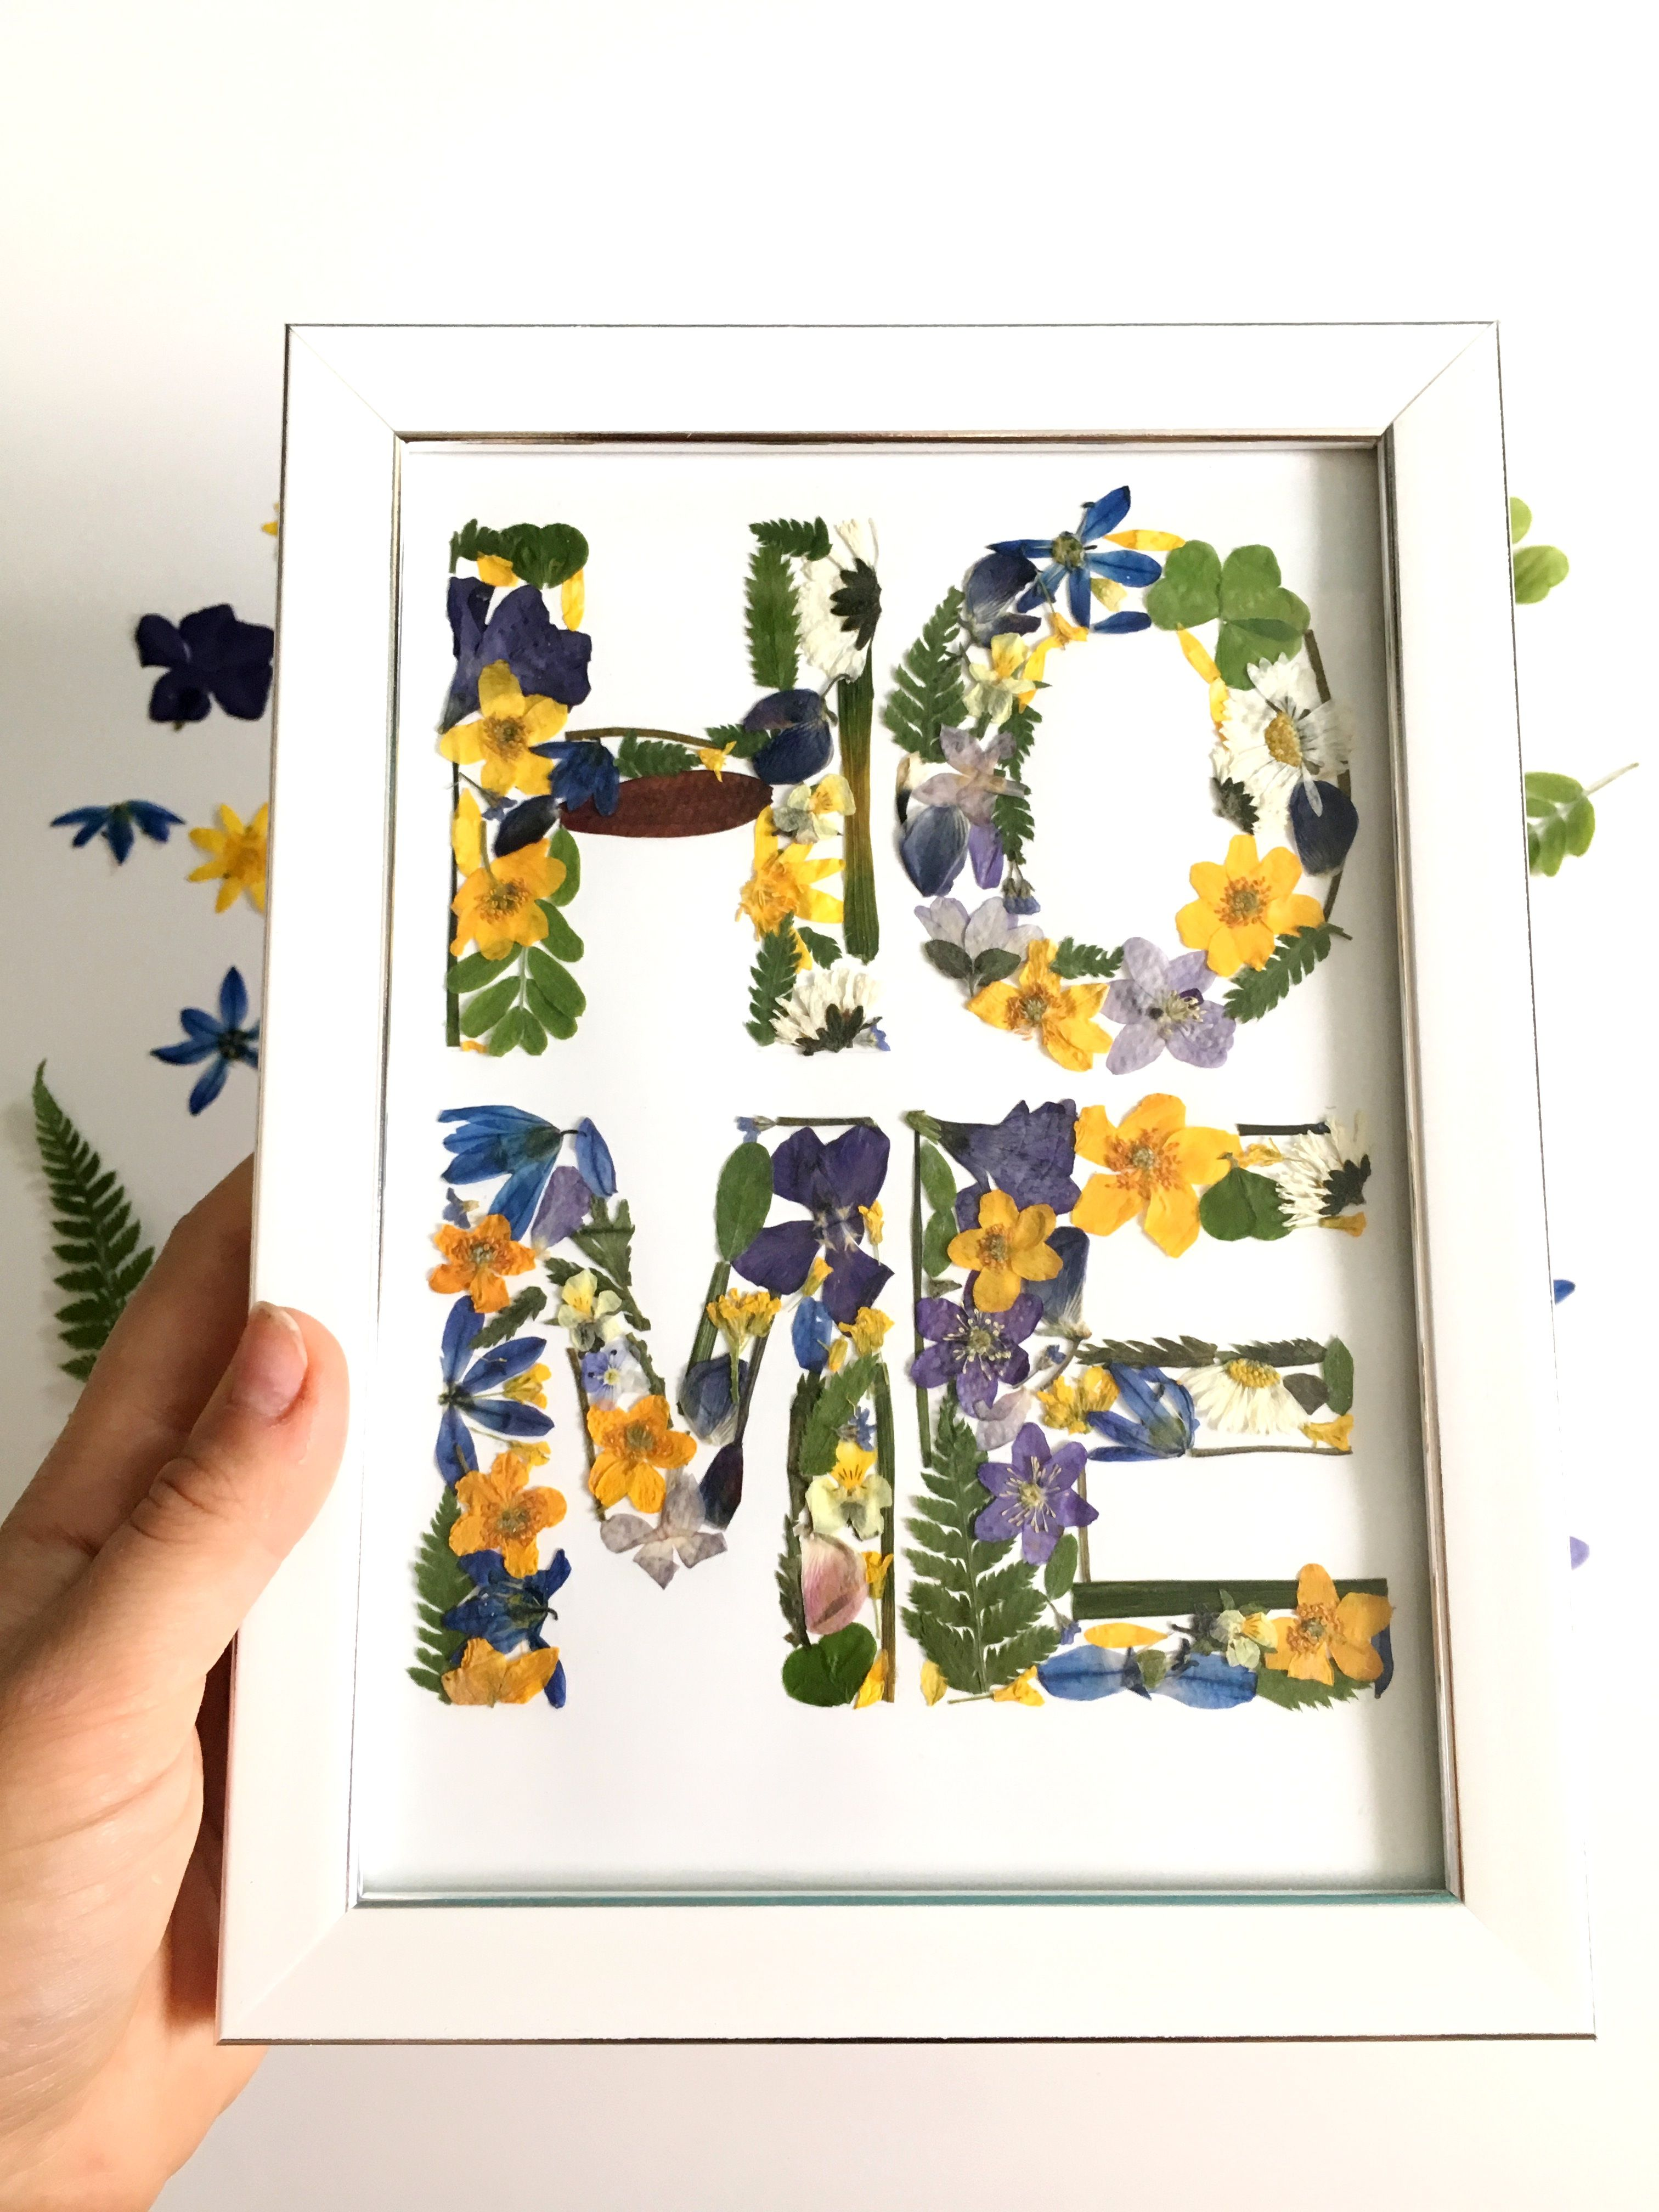 Photo of Our first home First home gift Housewarming gift For new home owners Framed gift Real pressed flowers Herbarium gift Wall decor